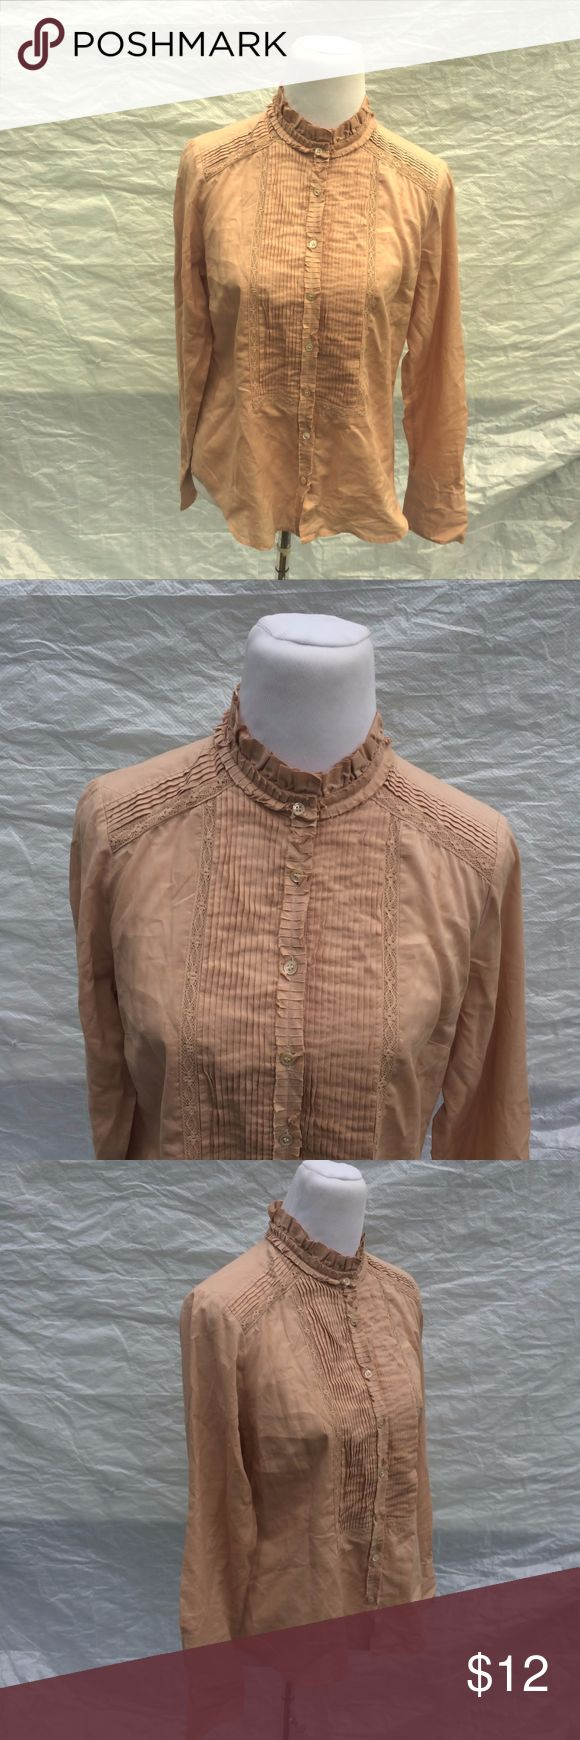 J Crew 10P Shirt Camel Brown Tuxedo Front Brand:  J Crew.  Color:  Brown.  Tag Size:  Misses 10 Petite.  Bust:  39 in.  Sleeve Length: 24 in.  Length:  23 in.  Materials:  Cotton.  Care Instructions:  Machine Wash, Tumble Dry. J. Crew Tops Button Down Shirts